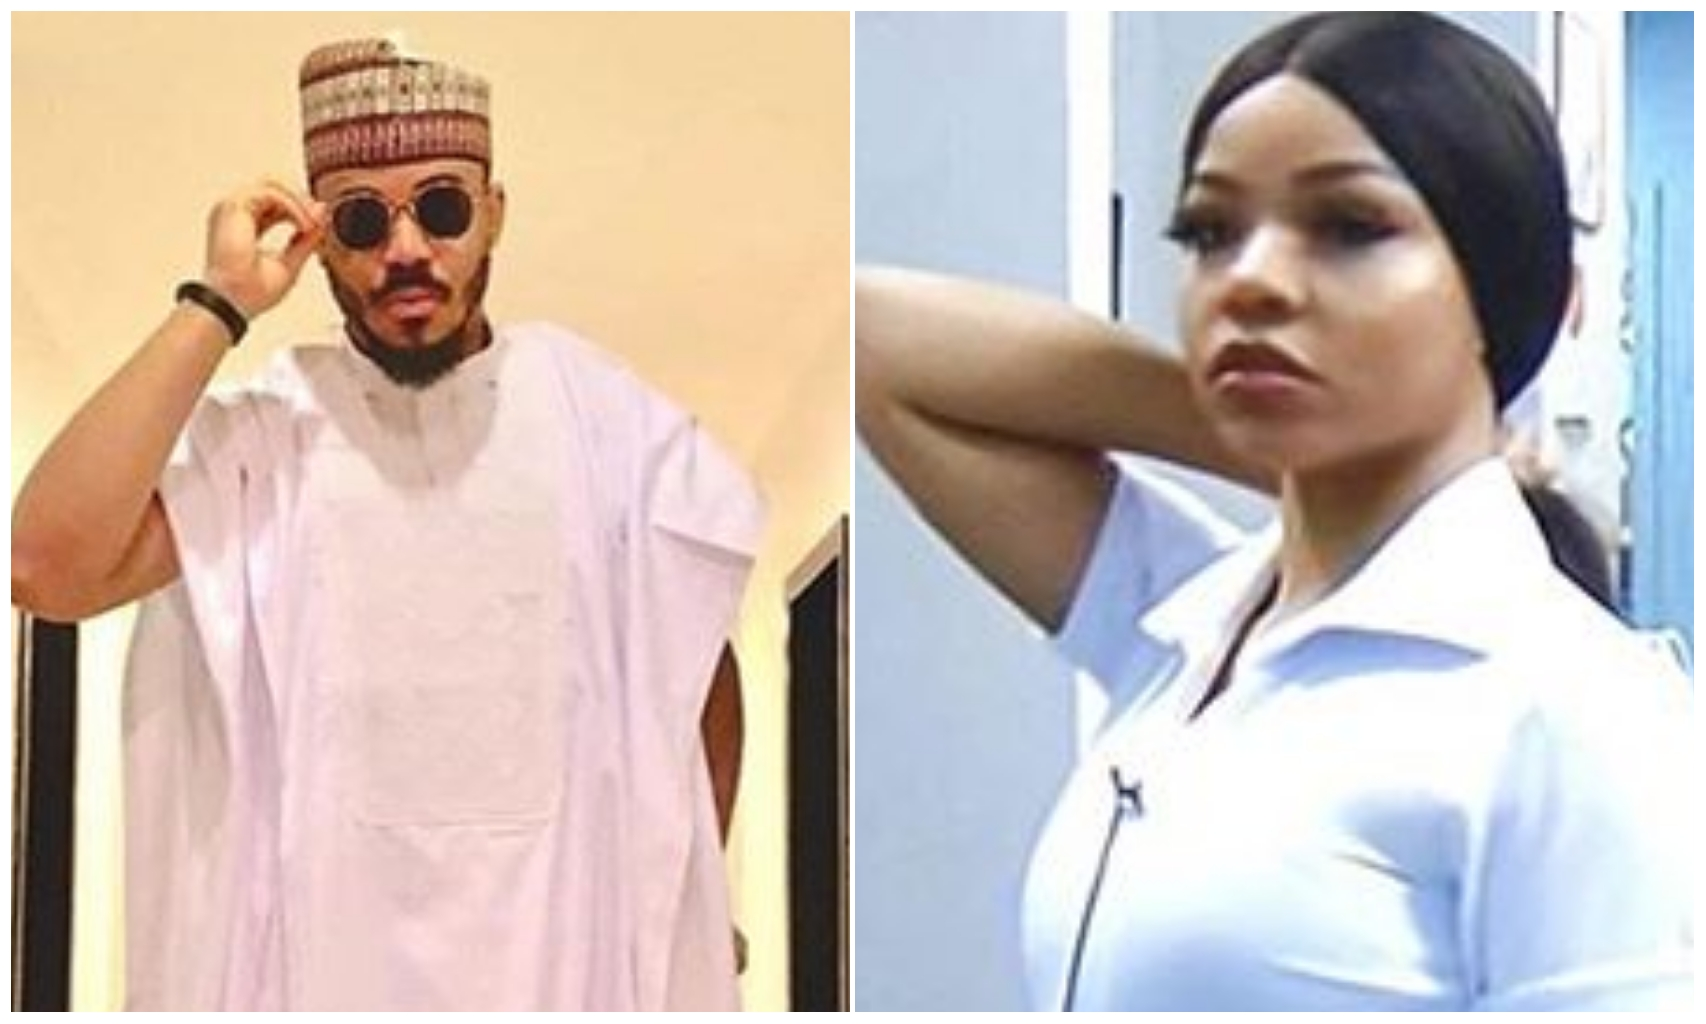 #BBNaija: Nengi breaks down in tears, says Ozo ignored her during their Saturday night party (Video)